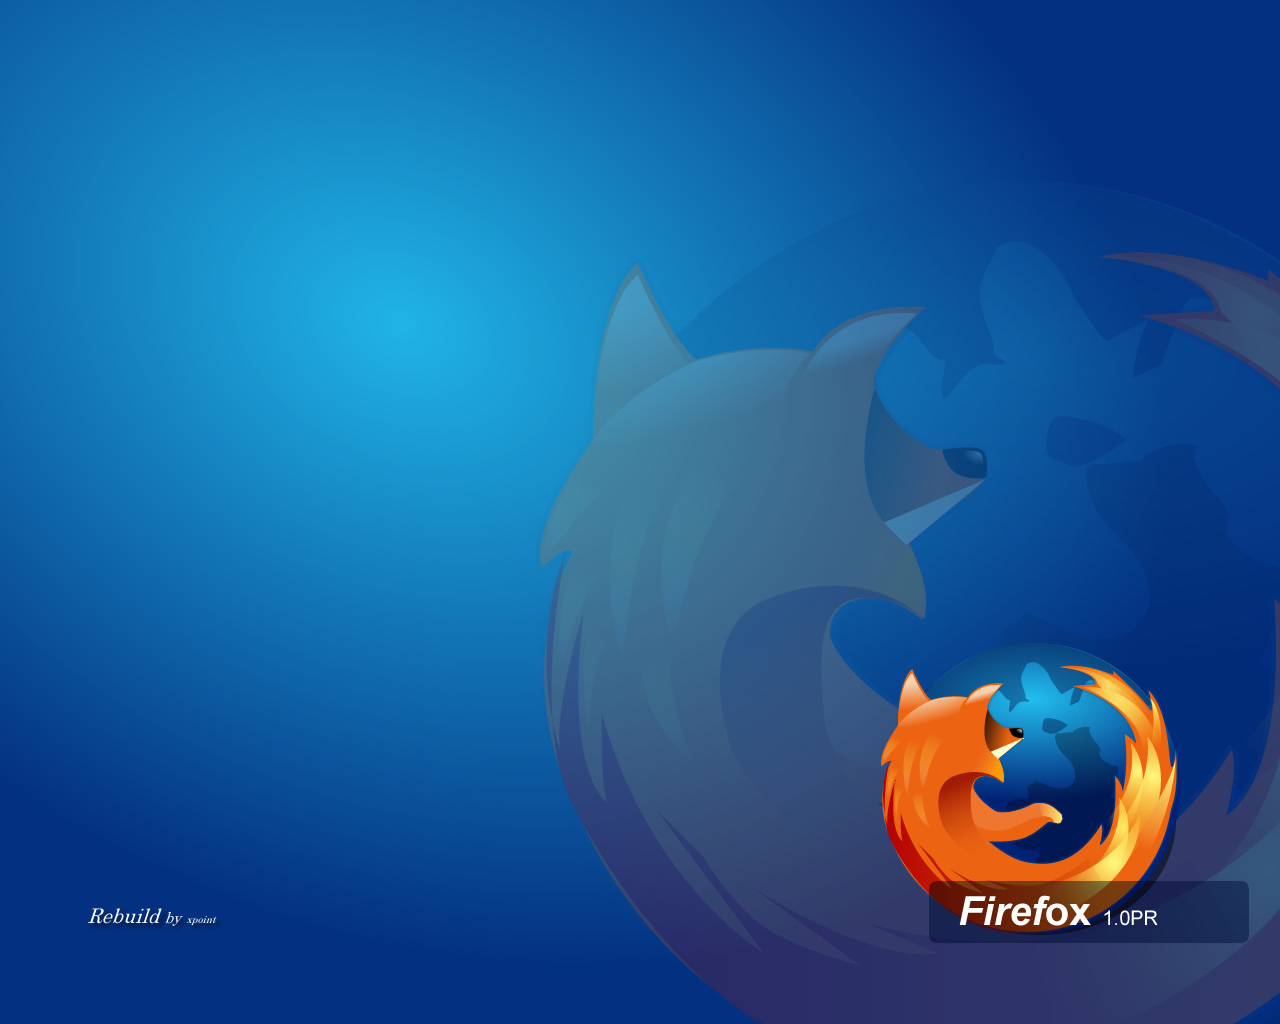 Computer Wallpapers Firefox Wallpapers 1280x1024